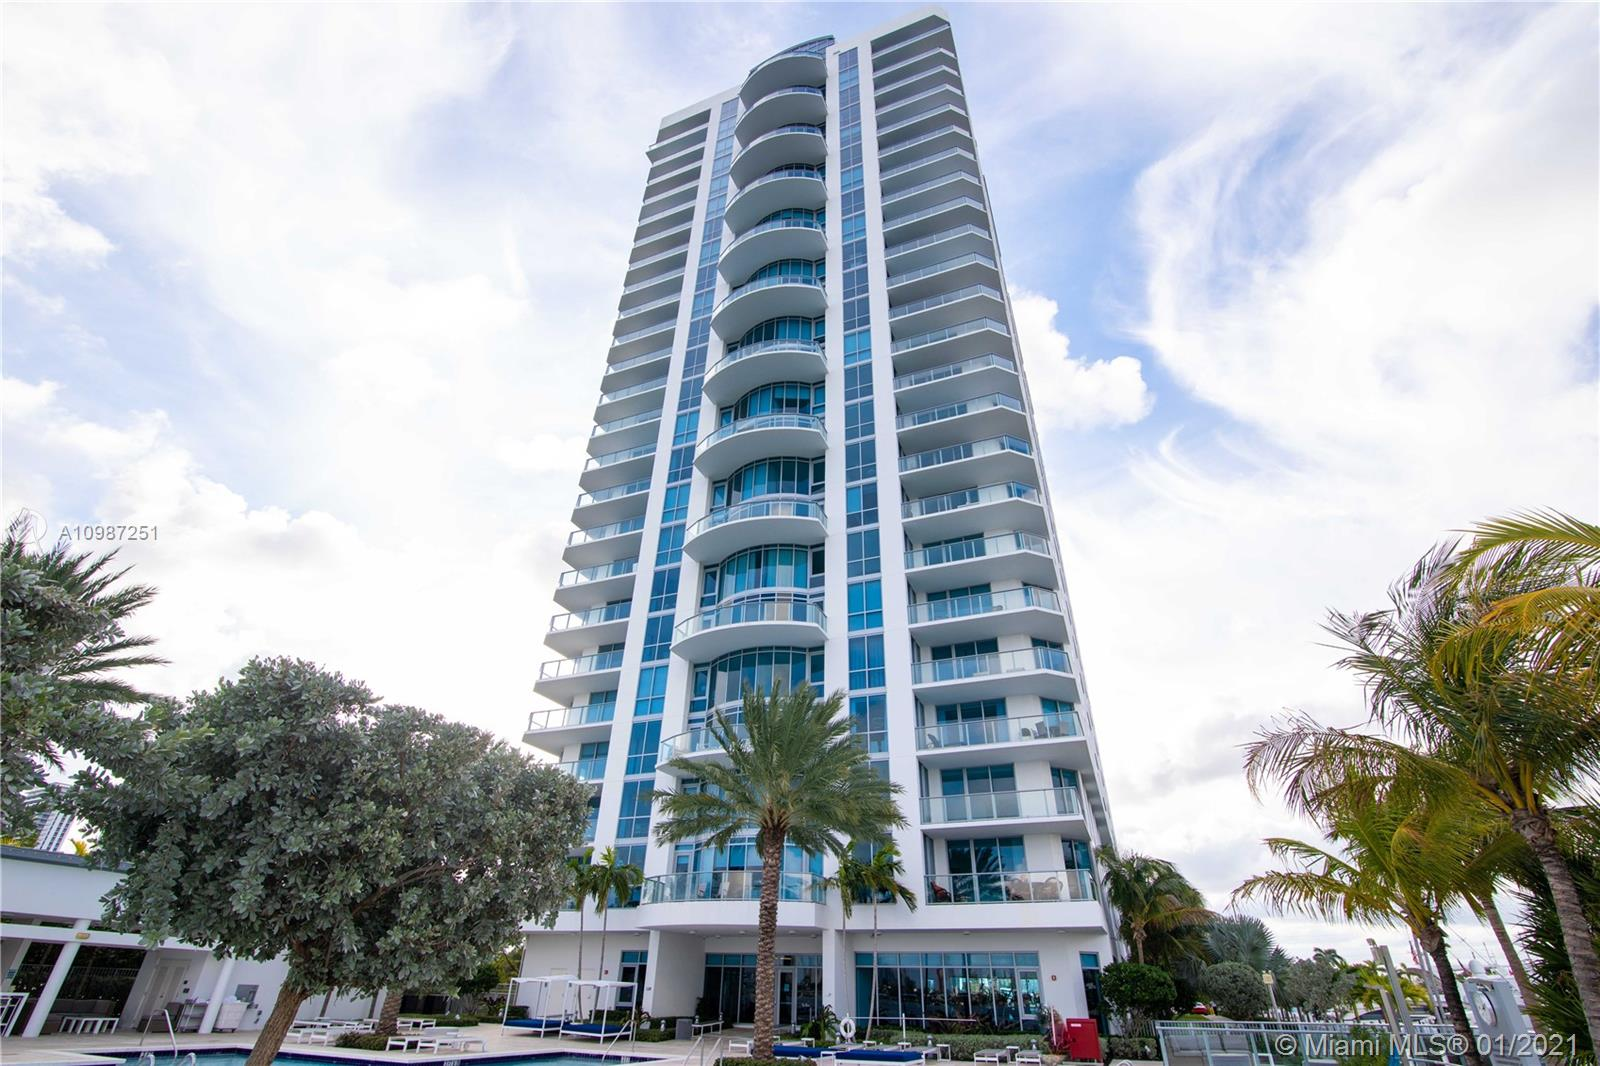 Marina Palms 1 #206 - 17111 Biscayne Blvd #206, North Miami Beach, FL 33160